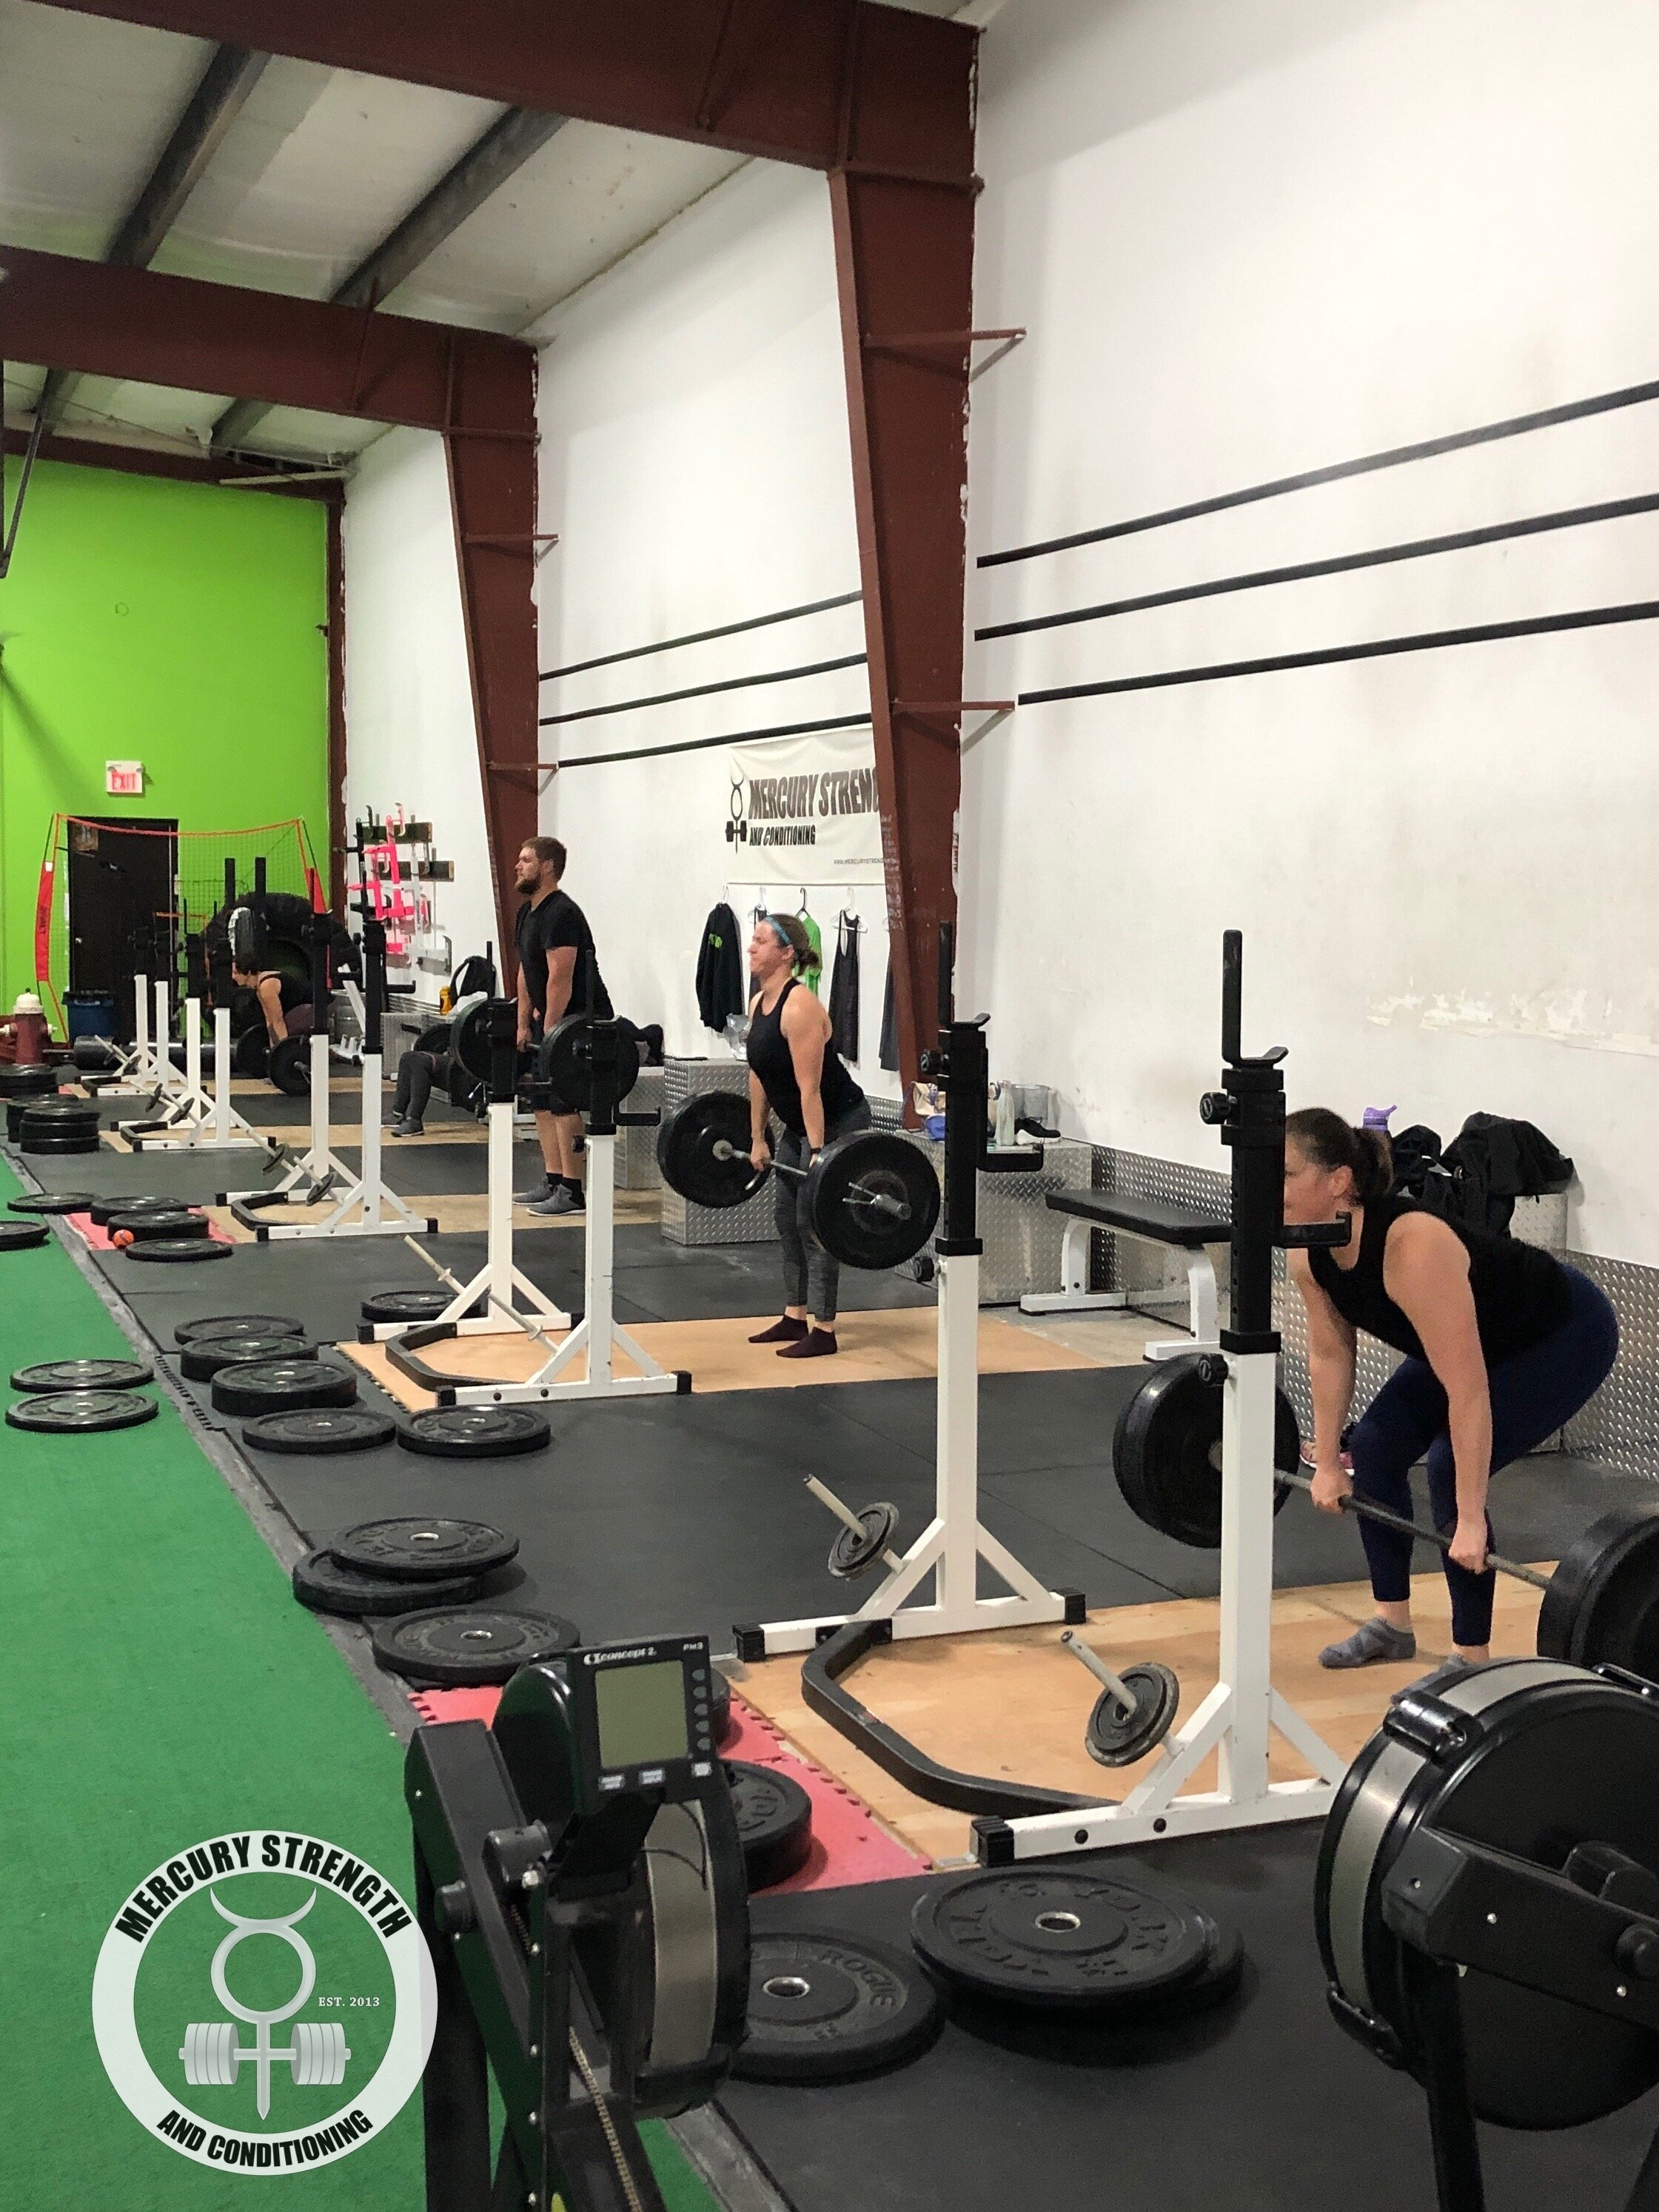 Gym-powerlifting-Olympic lifting-fitness-personal training-training-bootcamp-crossfit-kingston-gym-kingston gym-physique-body building-nutrition-kids-mercury-strength-conditioning-athlete-ontario powerlifting association-OPA-Canadian powerlifting federation-CPF-Deadlift.JPG